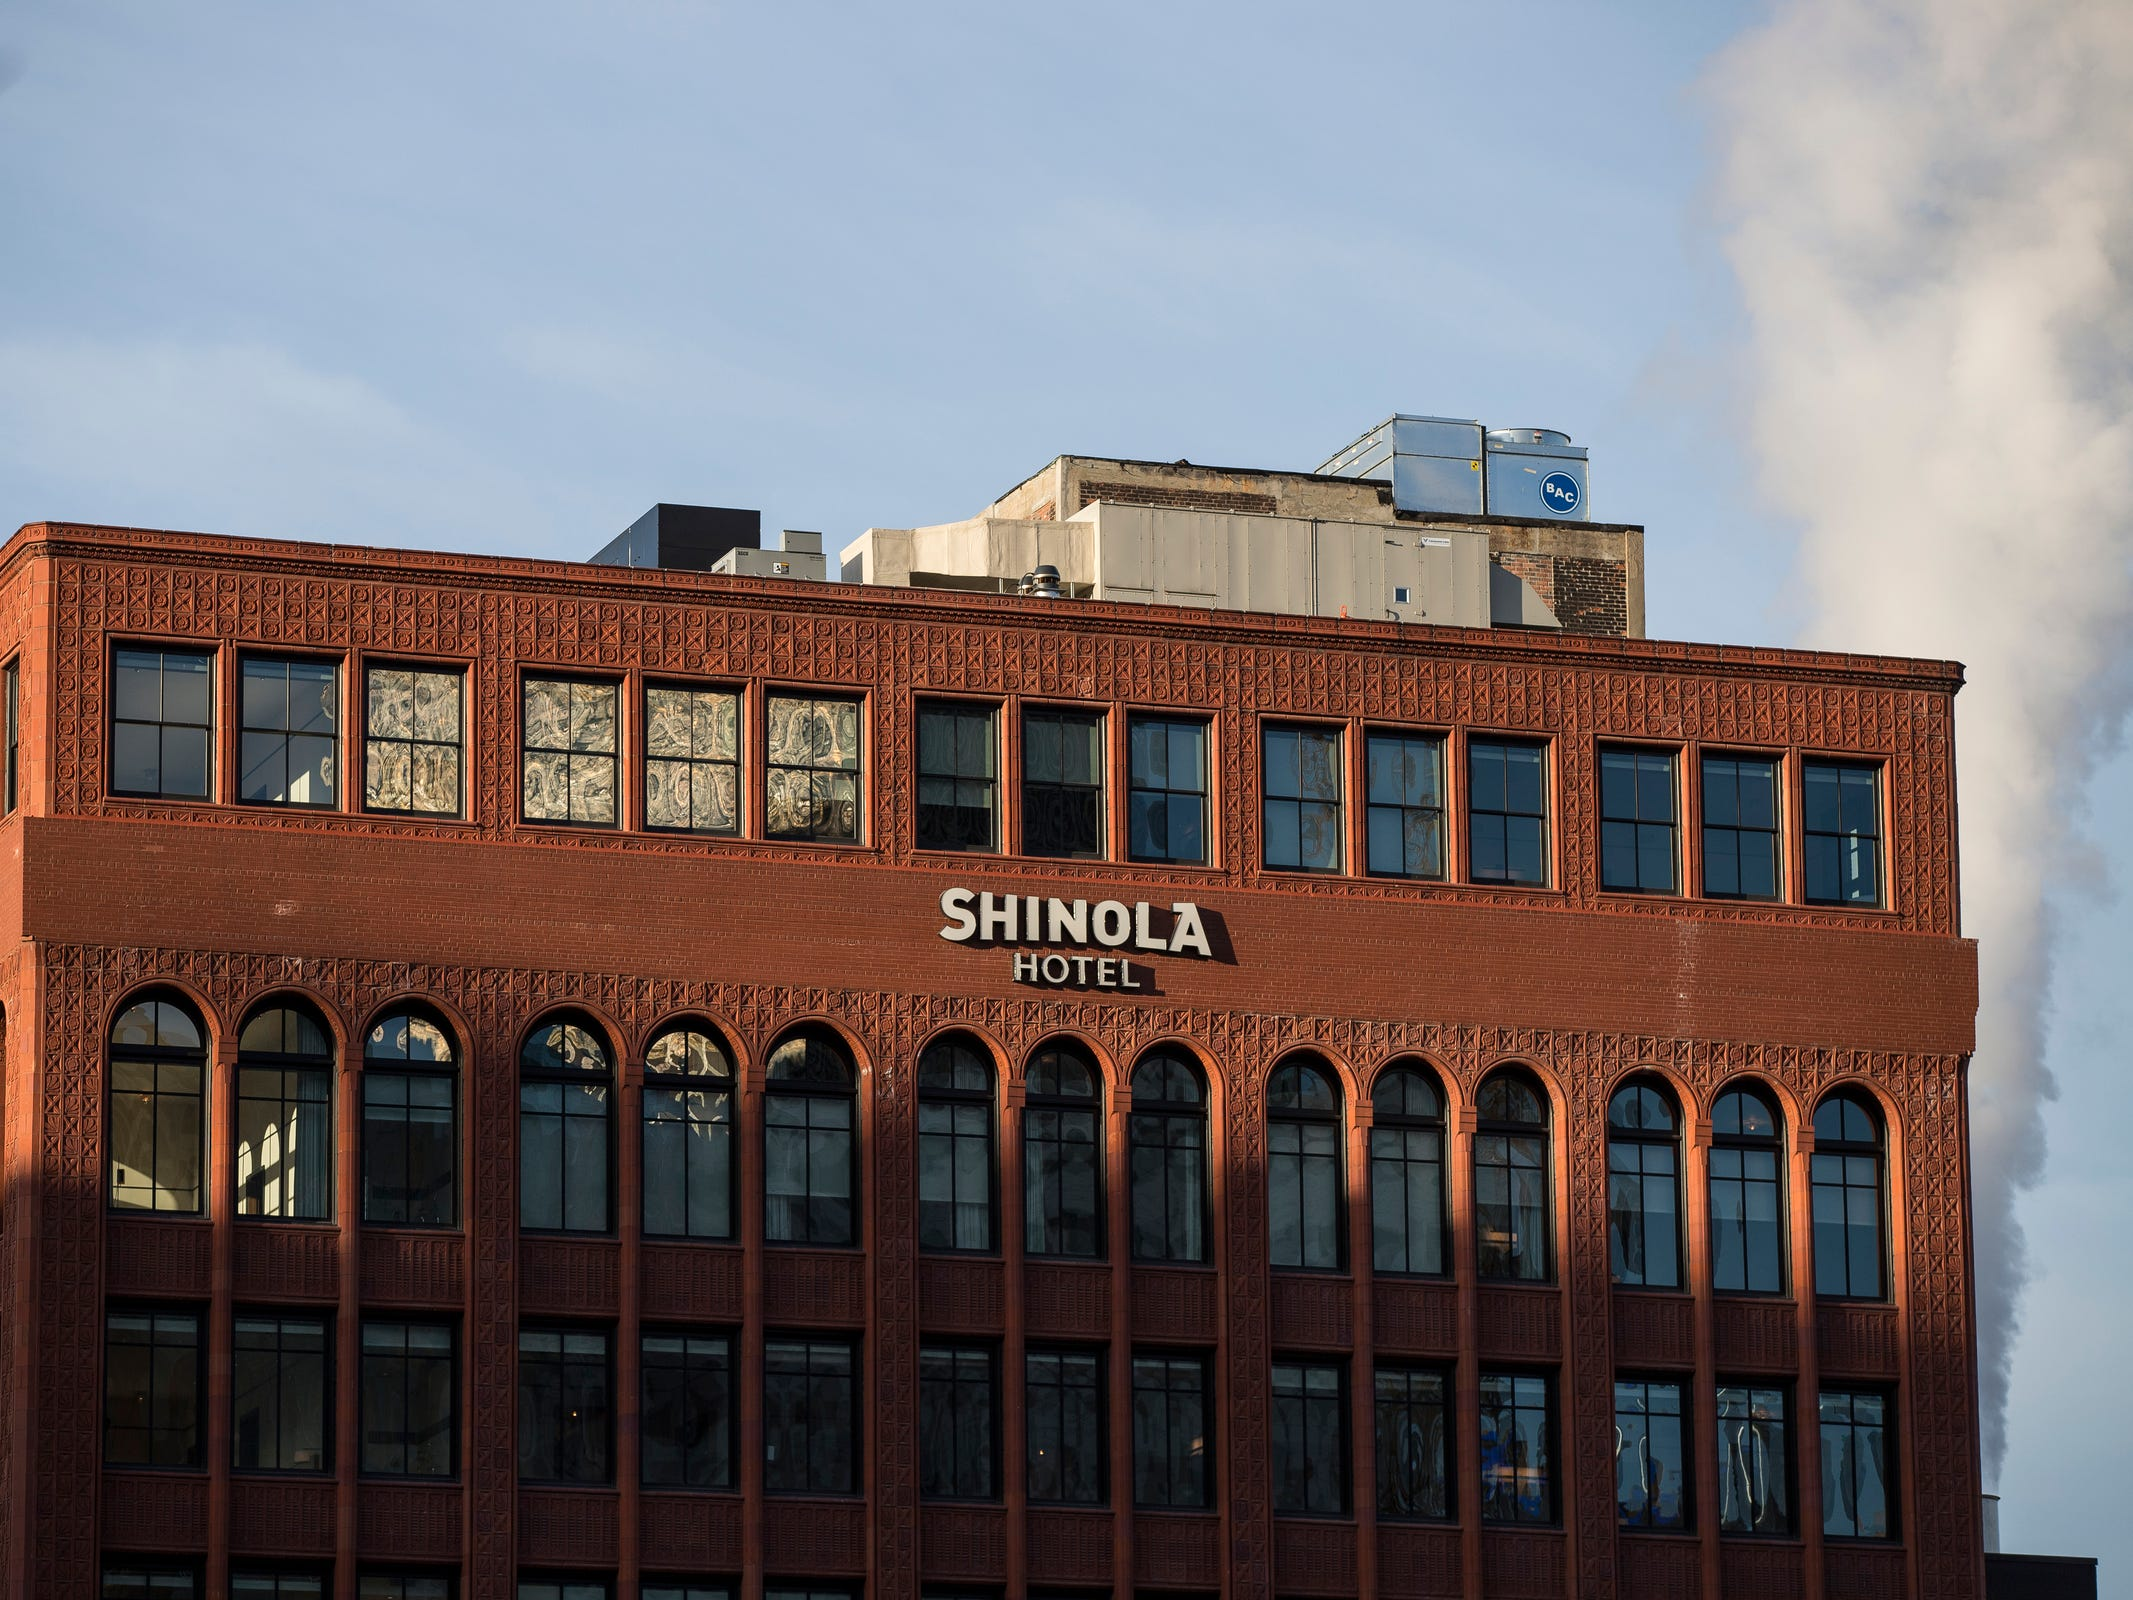 Shinola Hotel in downtown Detroit, Dec. 18, 2018.